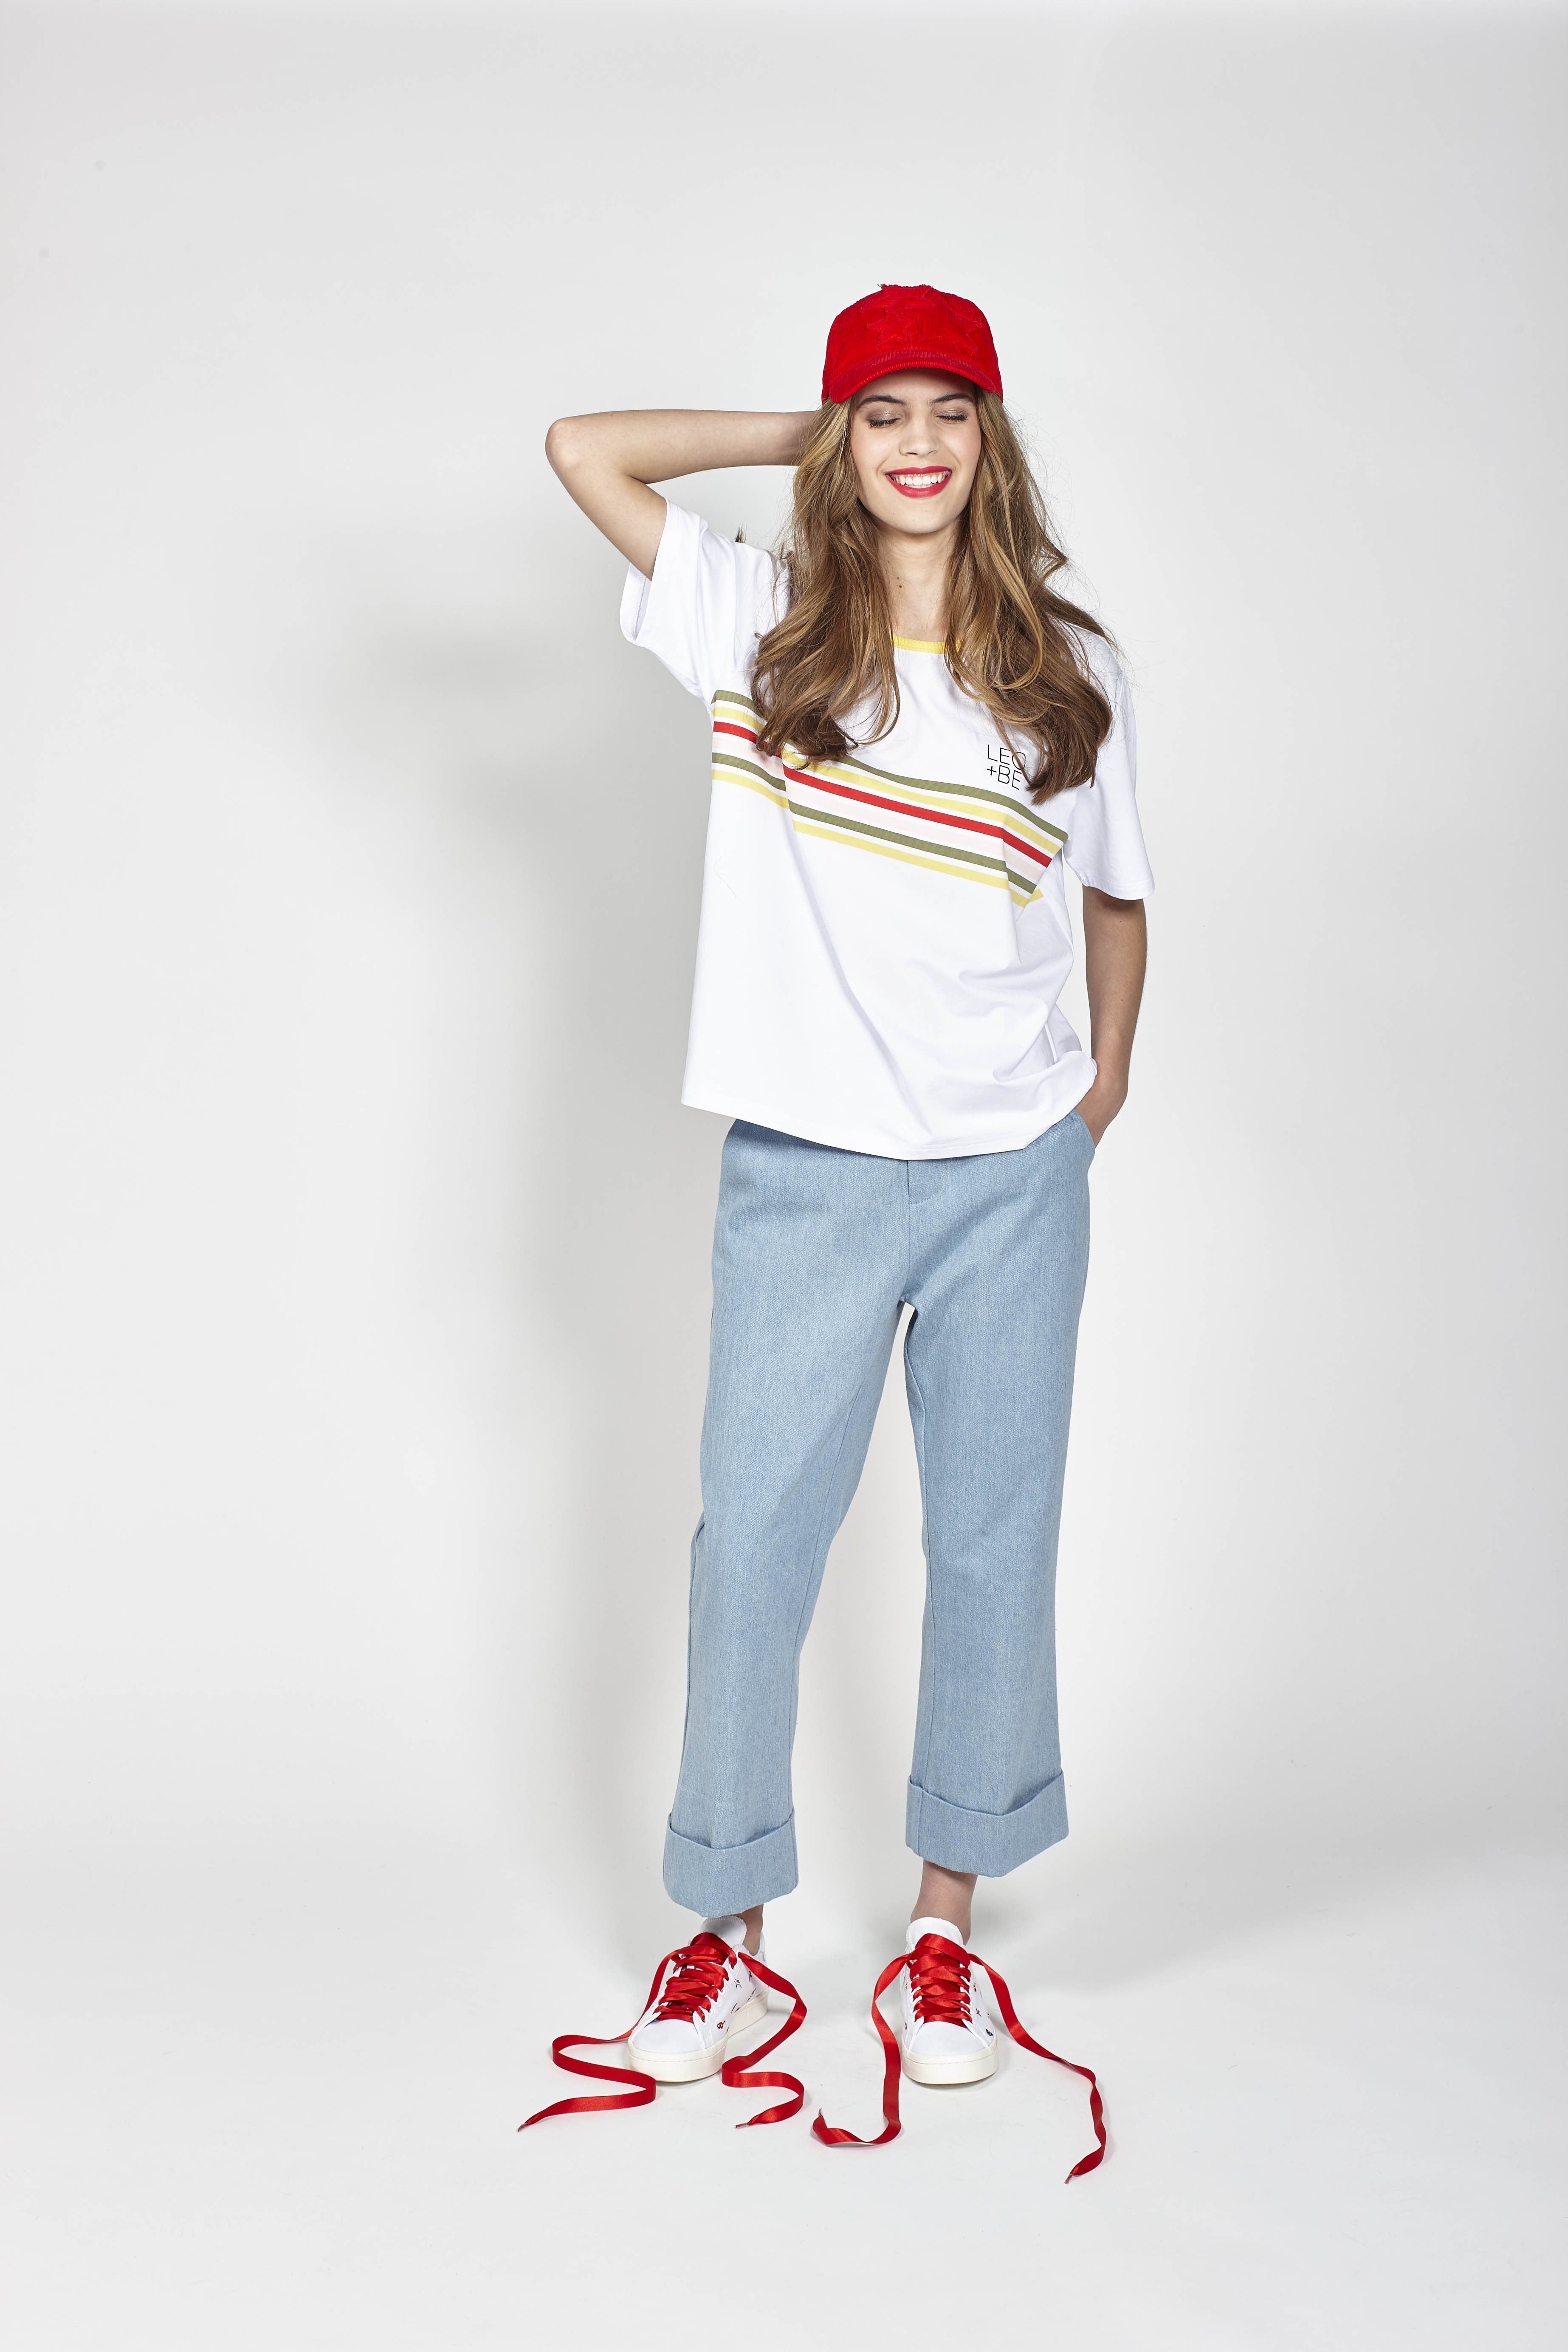 LB1071 LEO+BE California Tee, RRP$98.00 and LB1094 LEO+BE Rad Pant, RRP$159.00